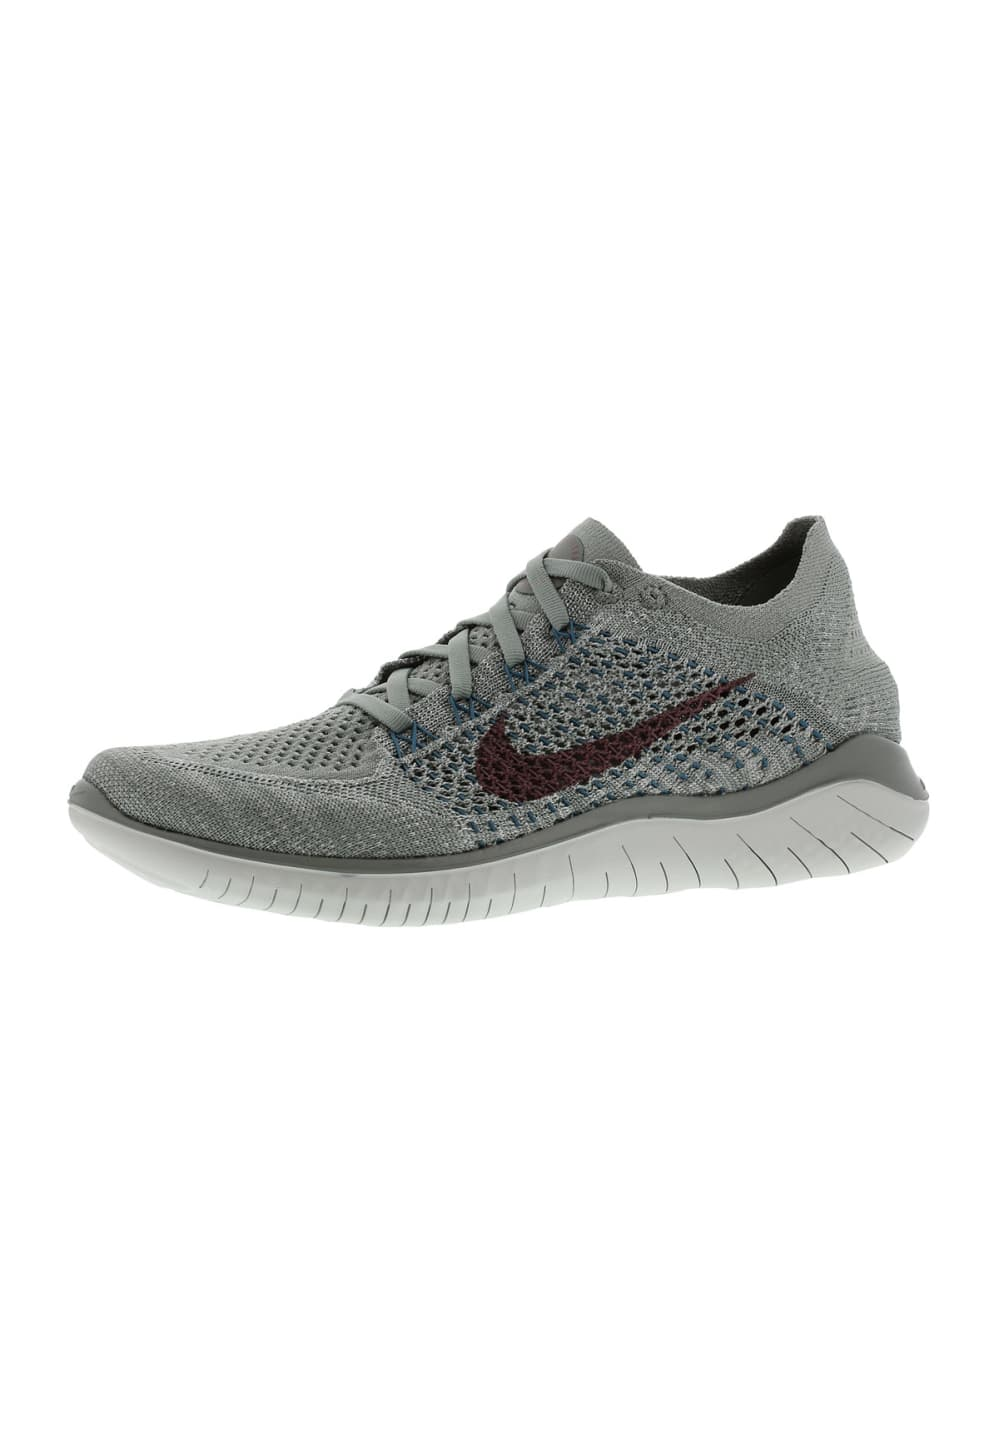 pretty nice 0dfd4 376be Nike Free RN Flyknit 2018 - Running shoes for Women - Grey